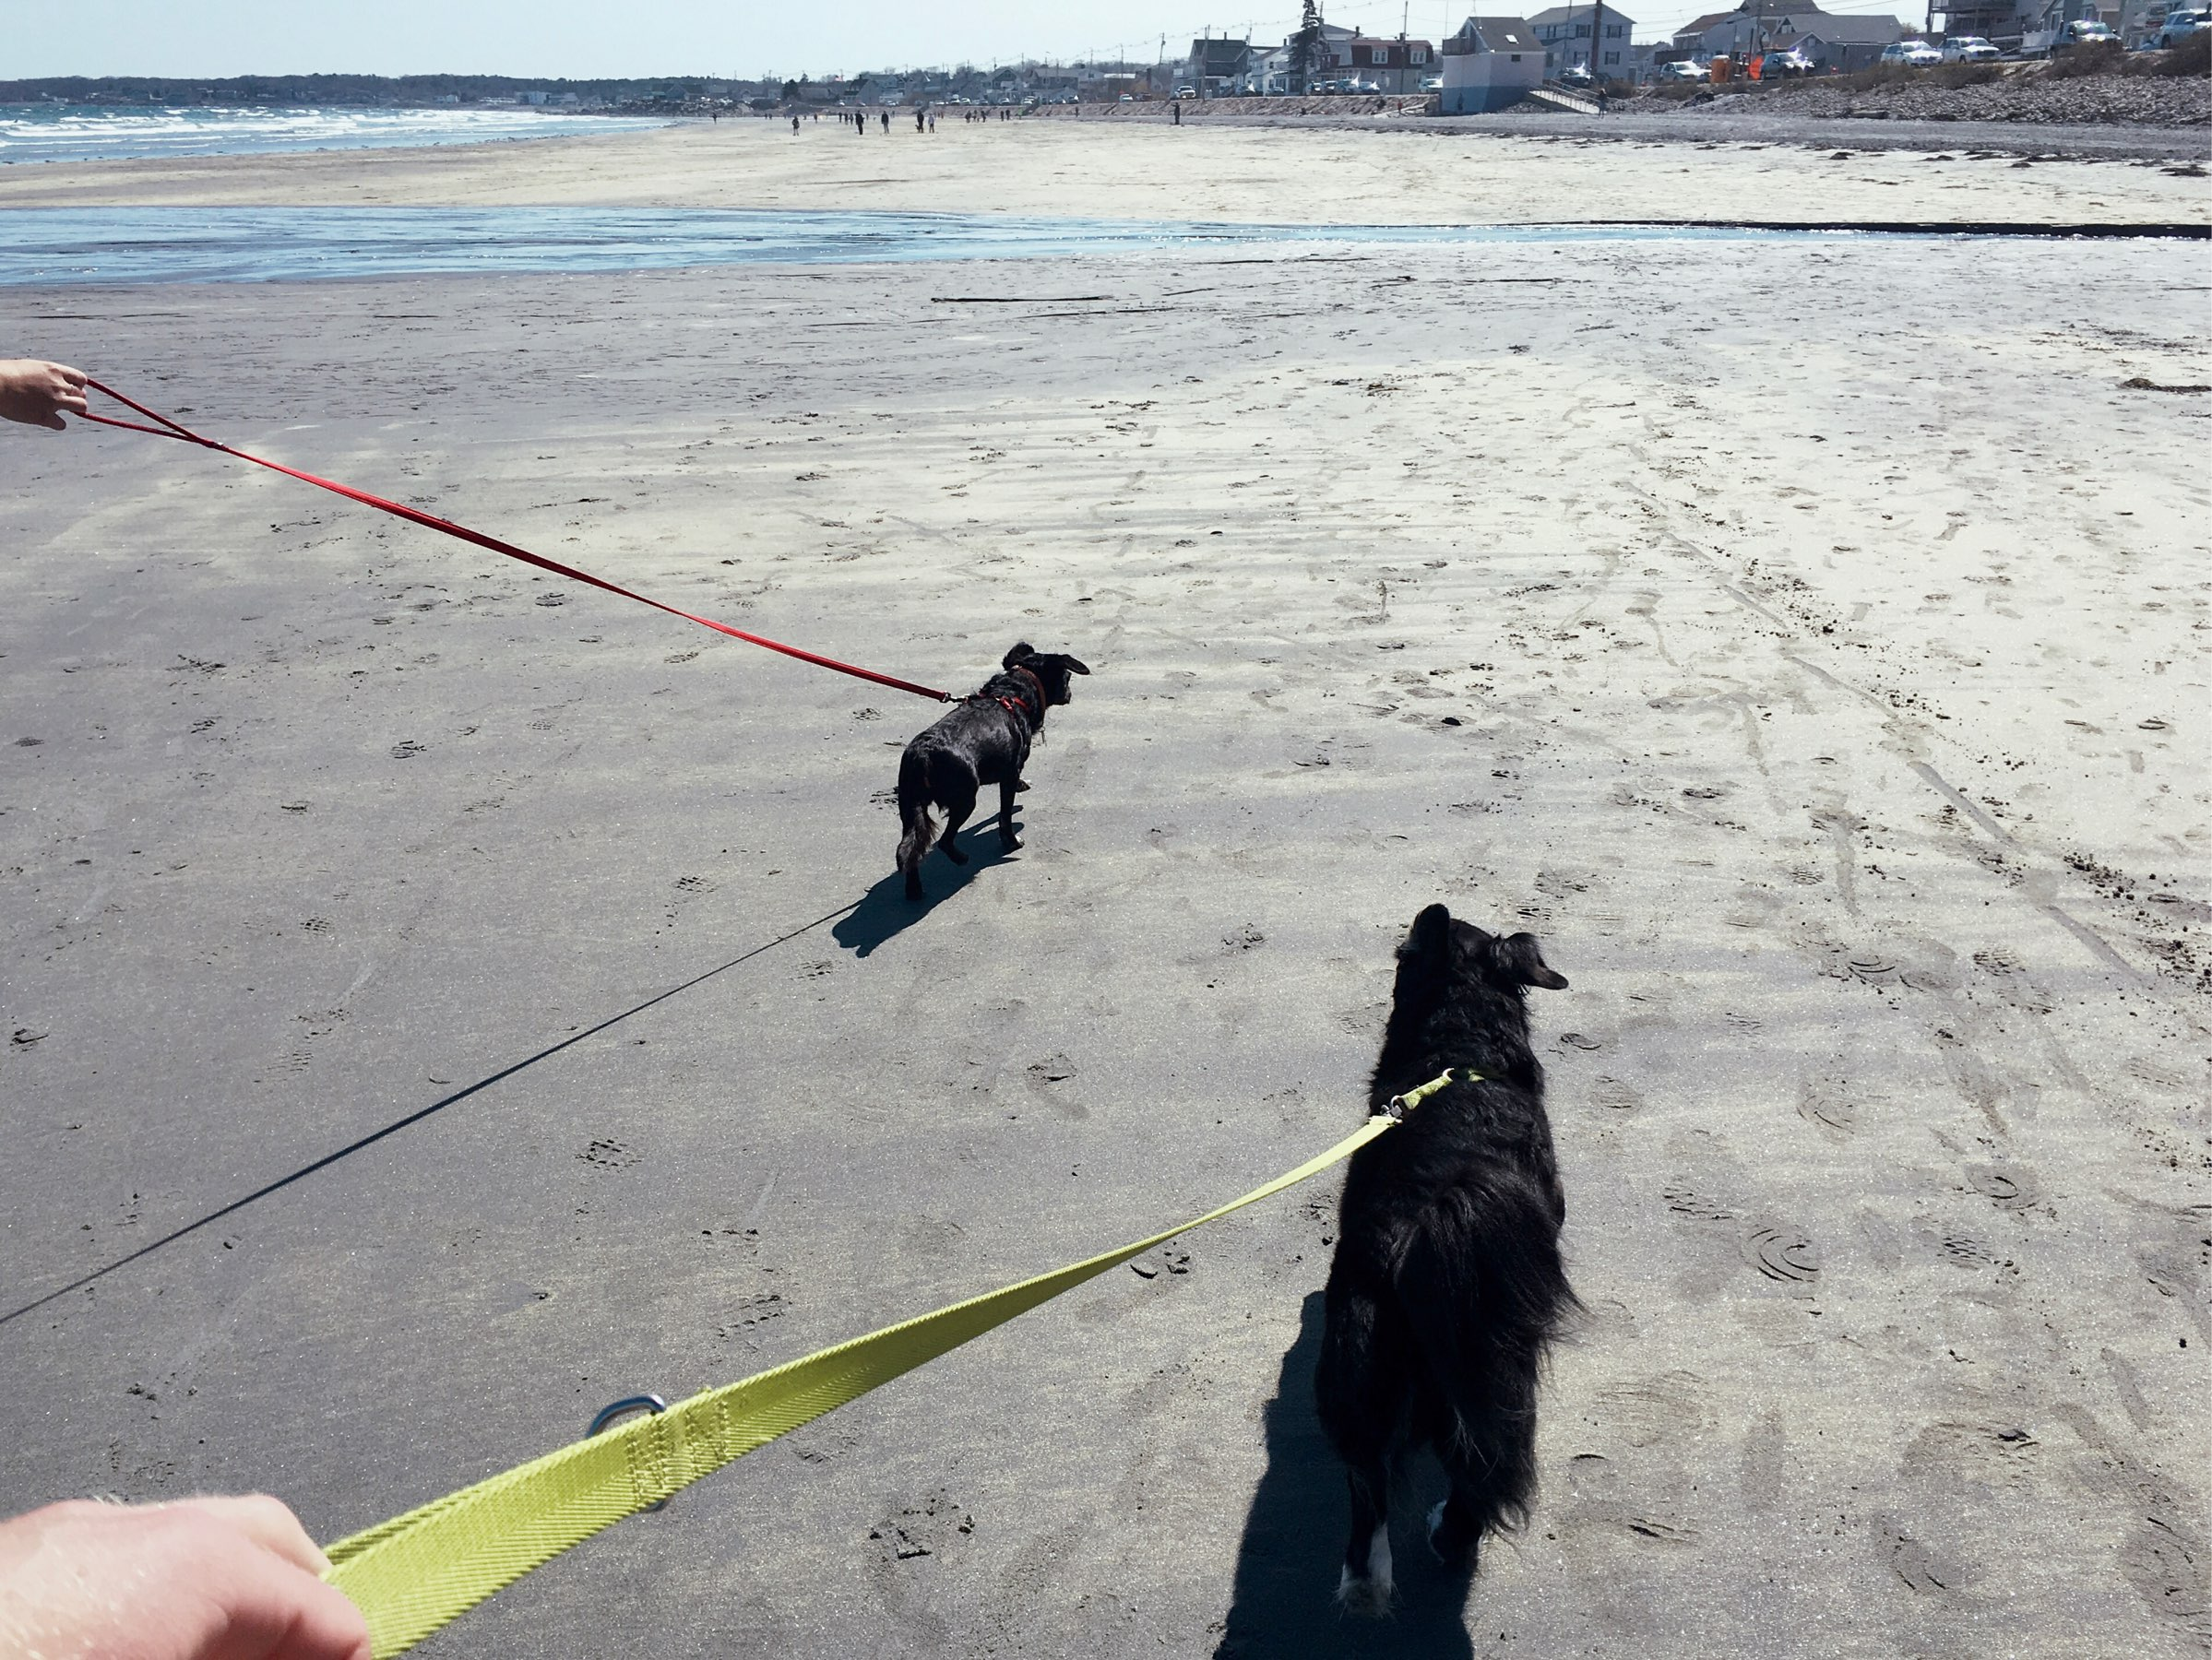 Two dogs on the beach.